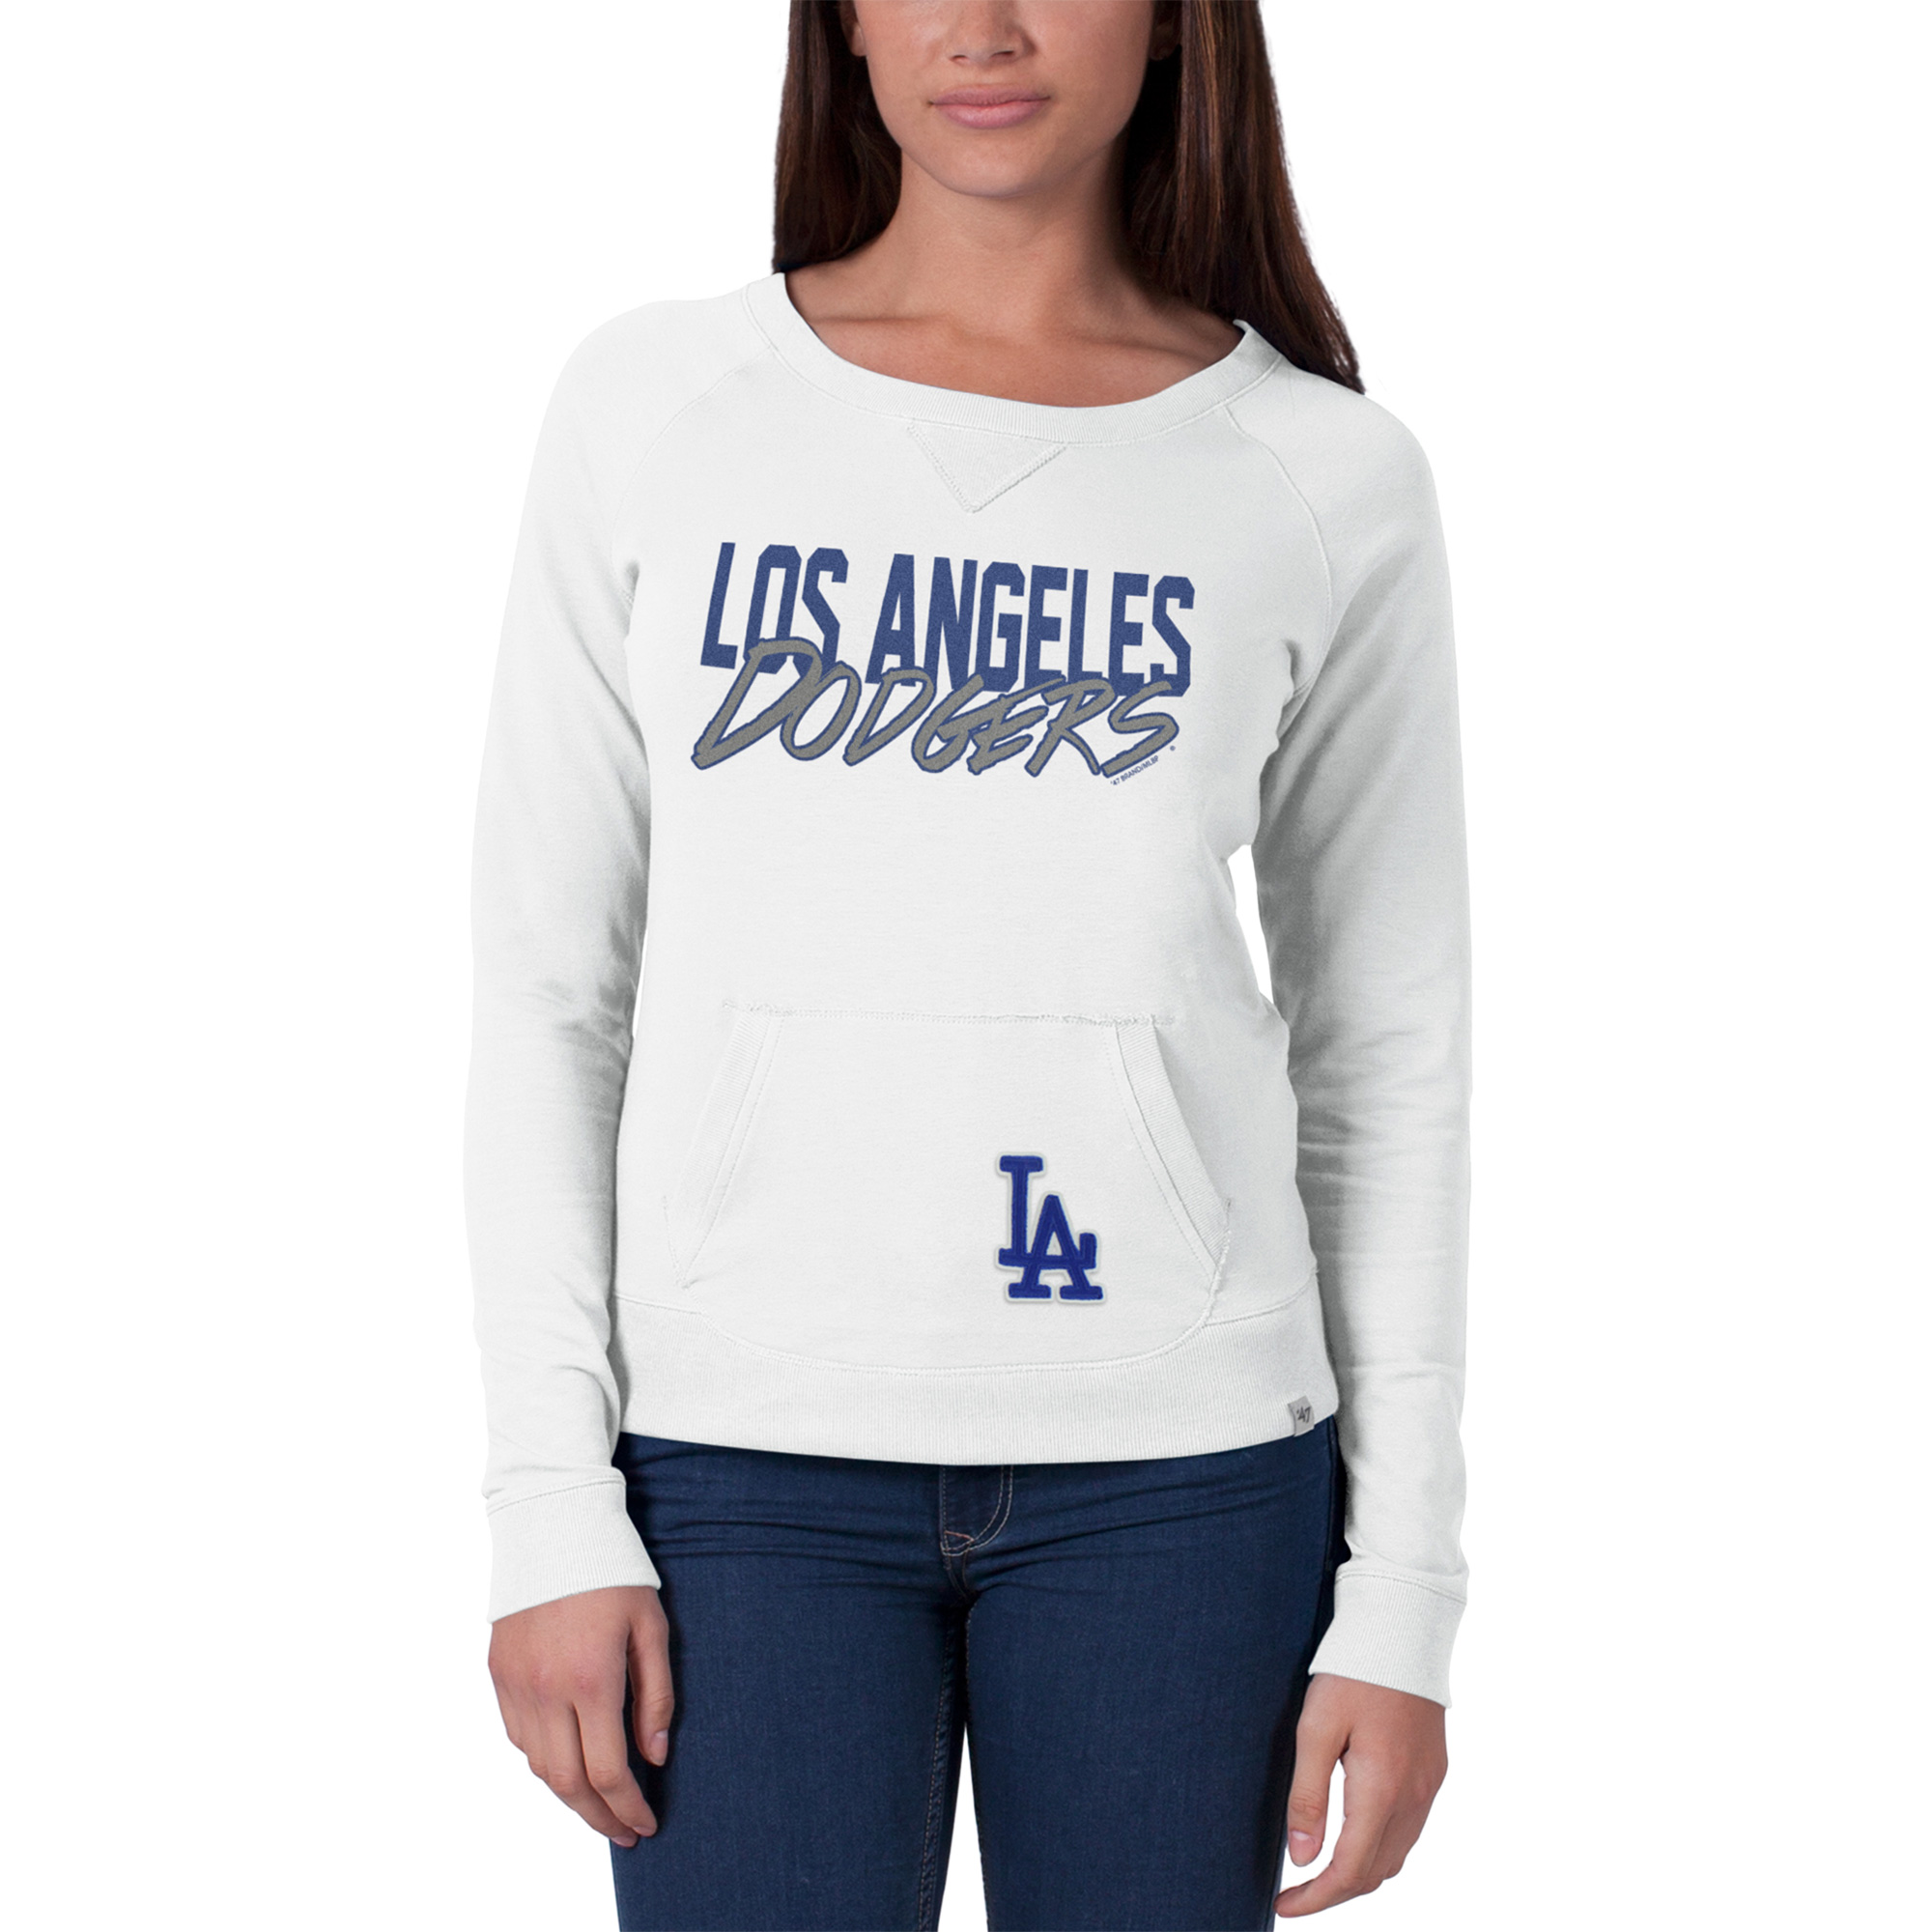 Los Angeles Dodgers '47 Women's Gameday Crew Neck Sweater - White